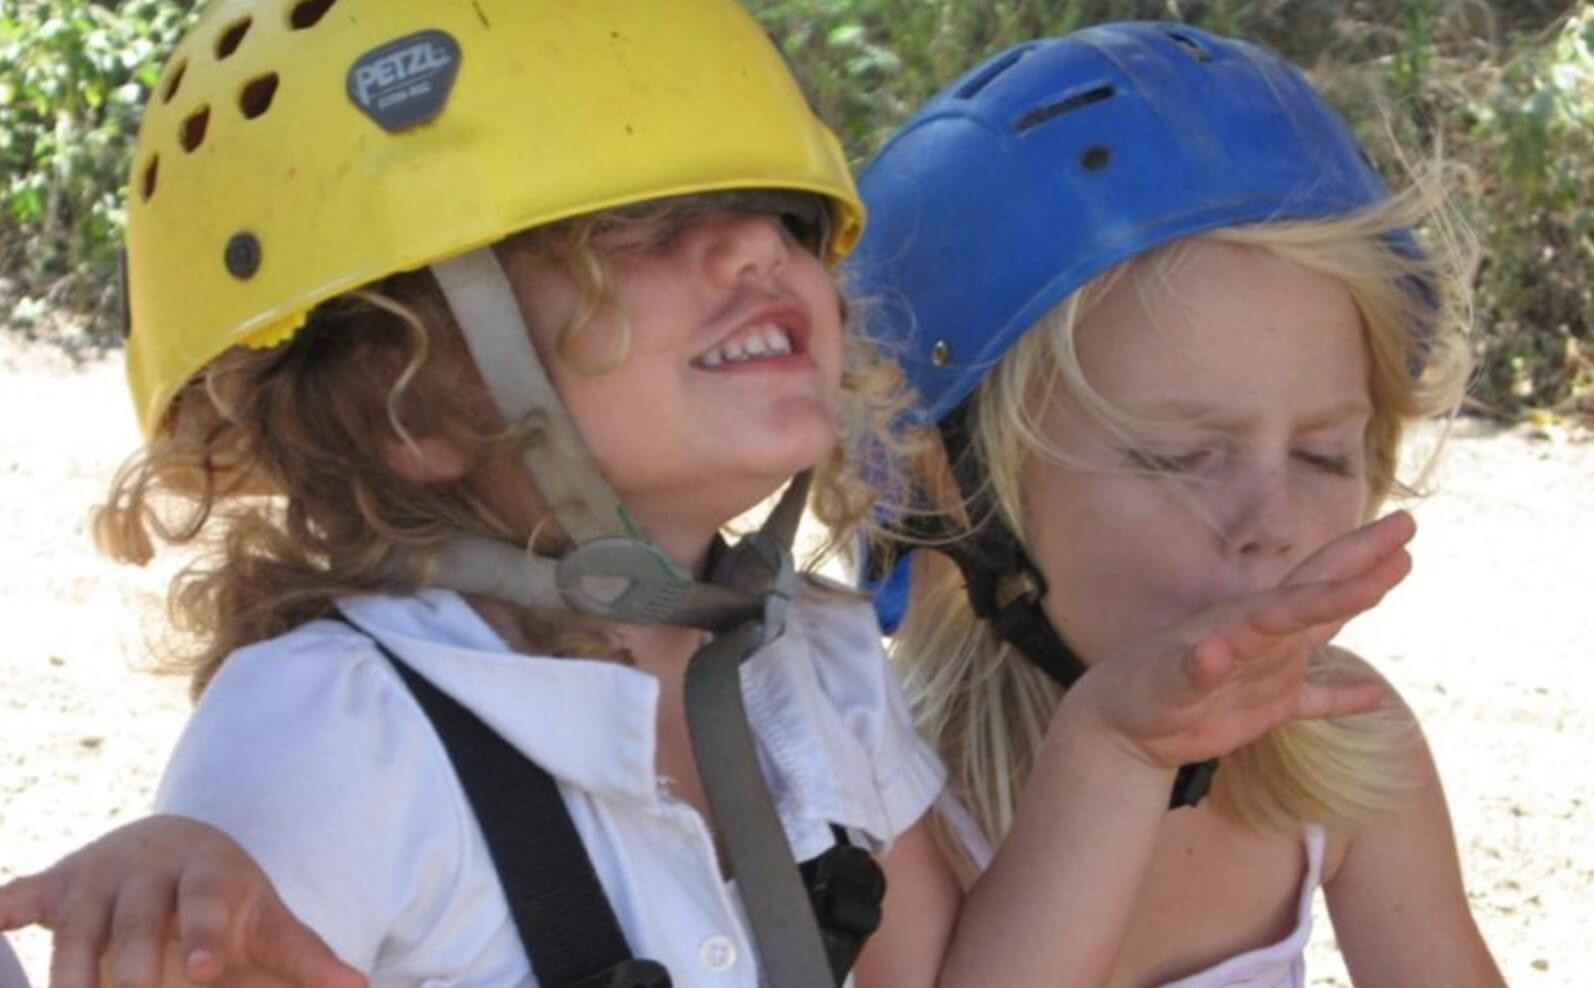 Two cute, blonde kids from canopy zipline group with helmet in Tamarindo Guanacaste Costa Rica